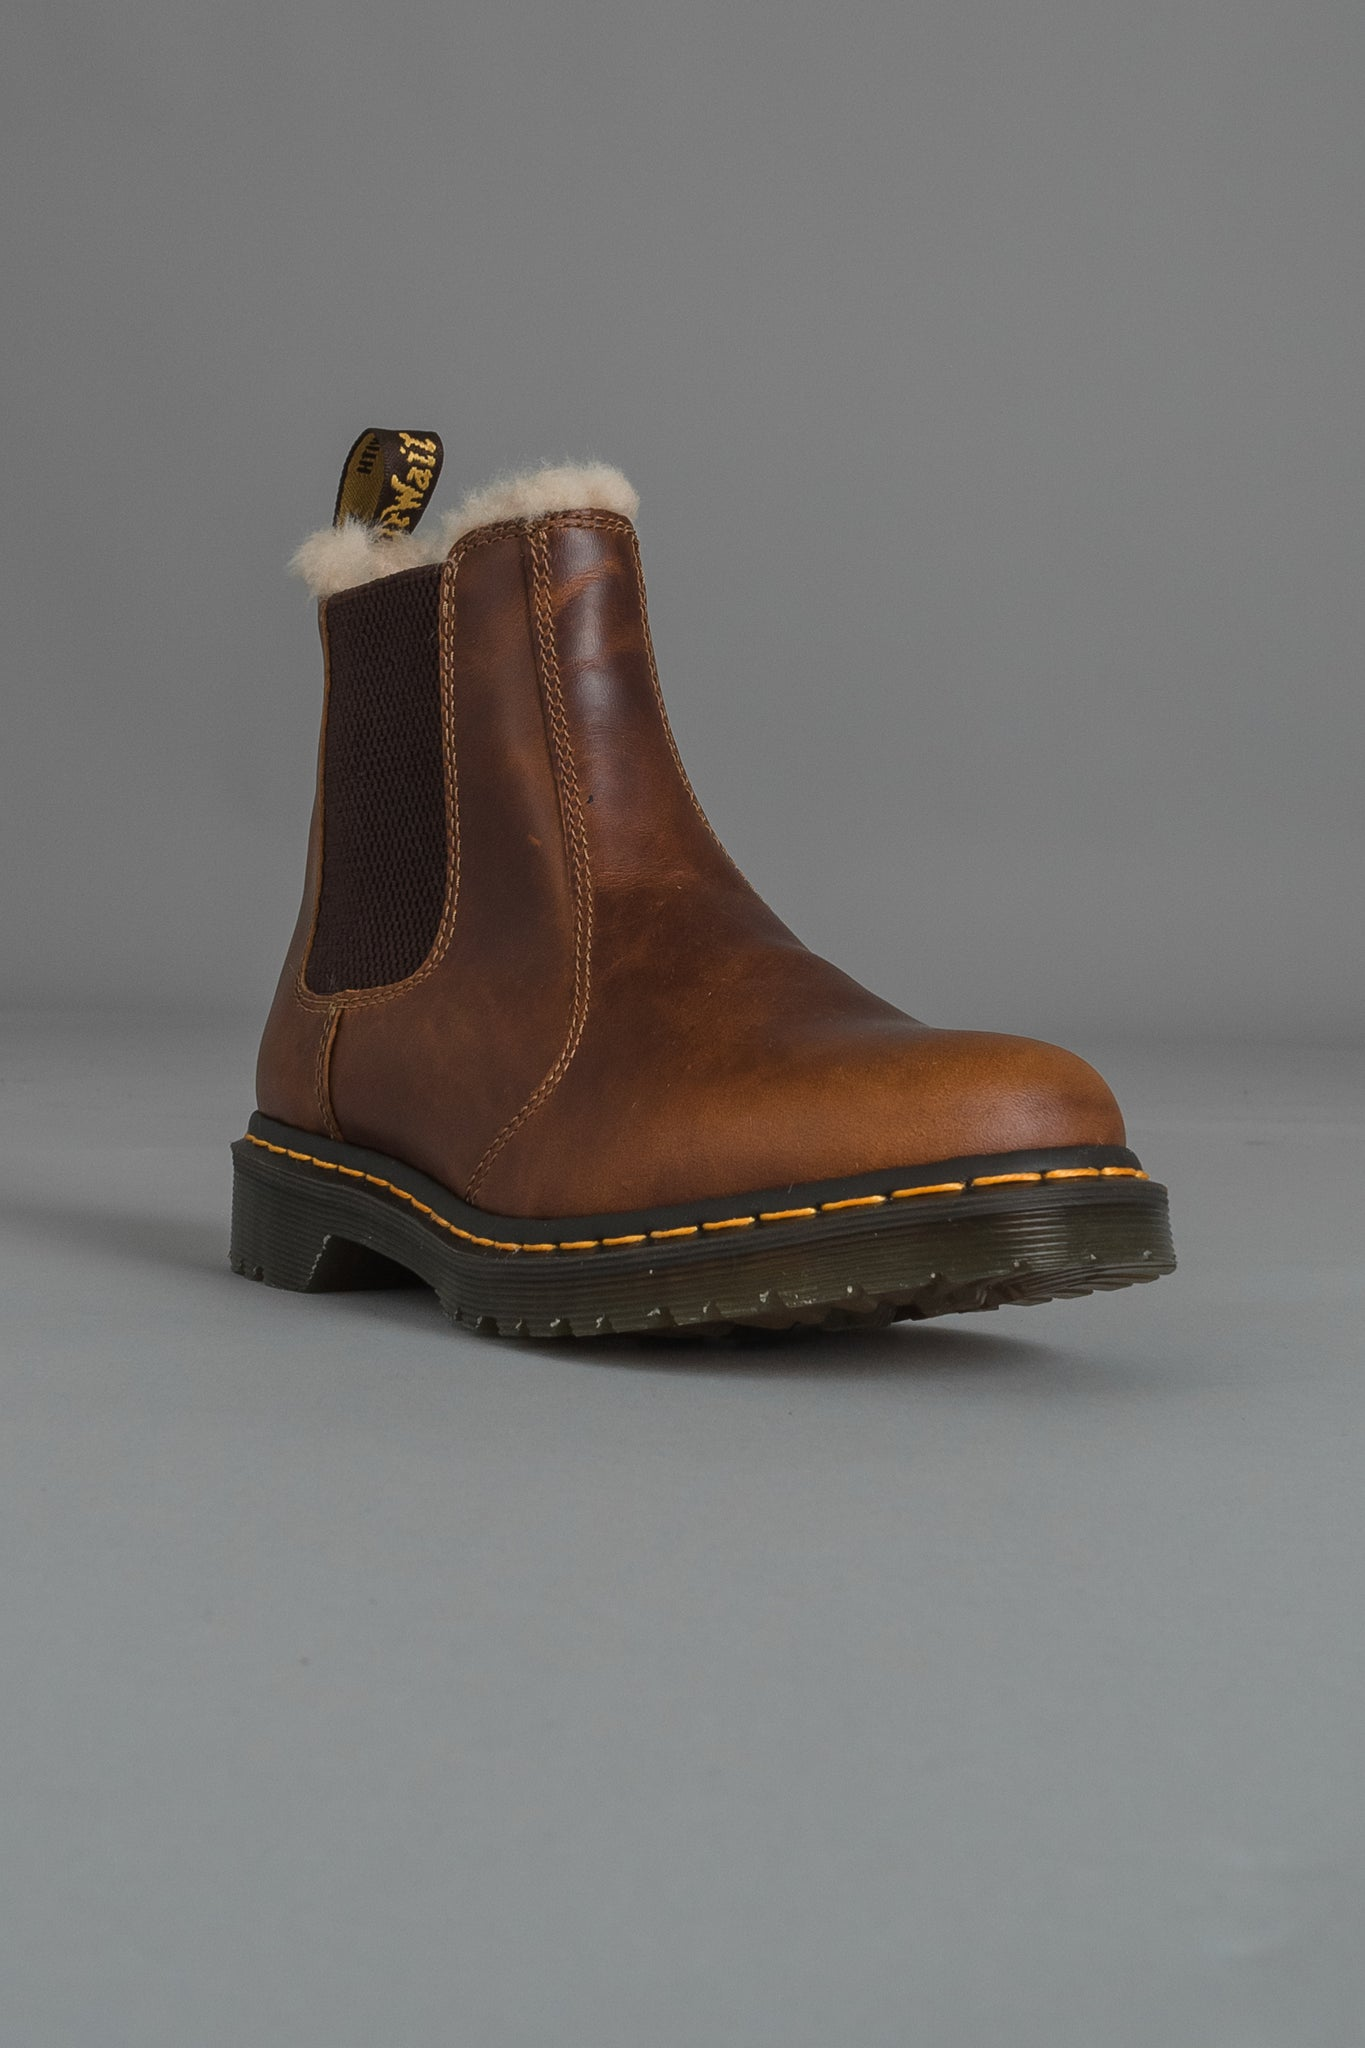 "Naisten Dr. Martens 2976 Leonore fur lined I INCH"" Tampere"